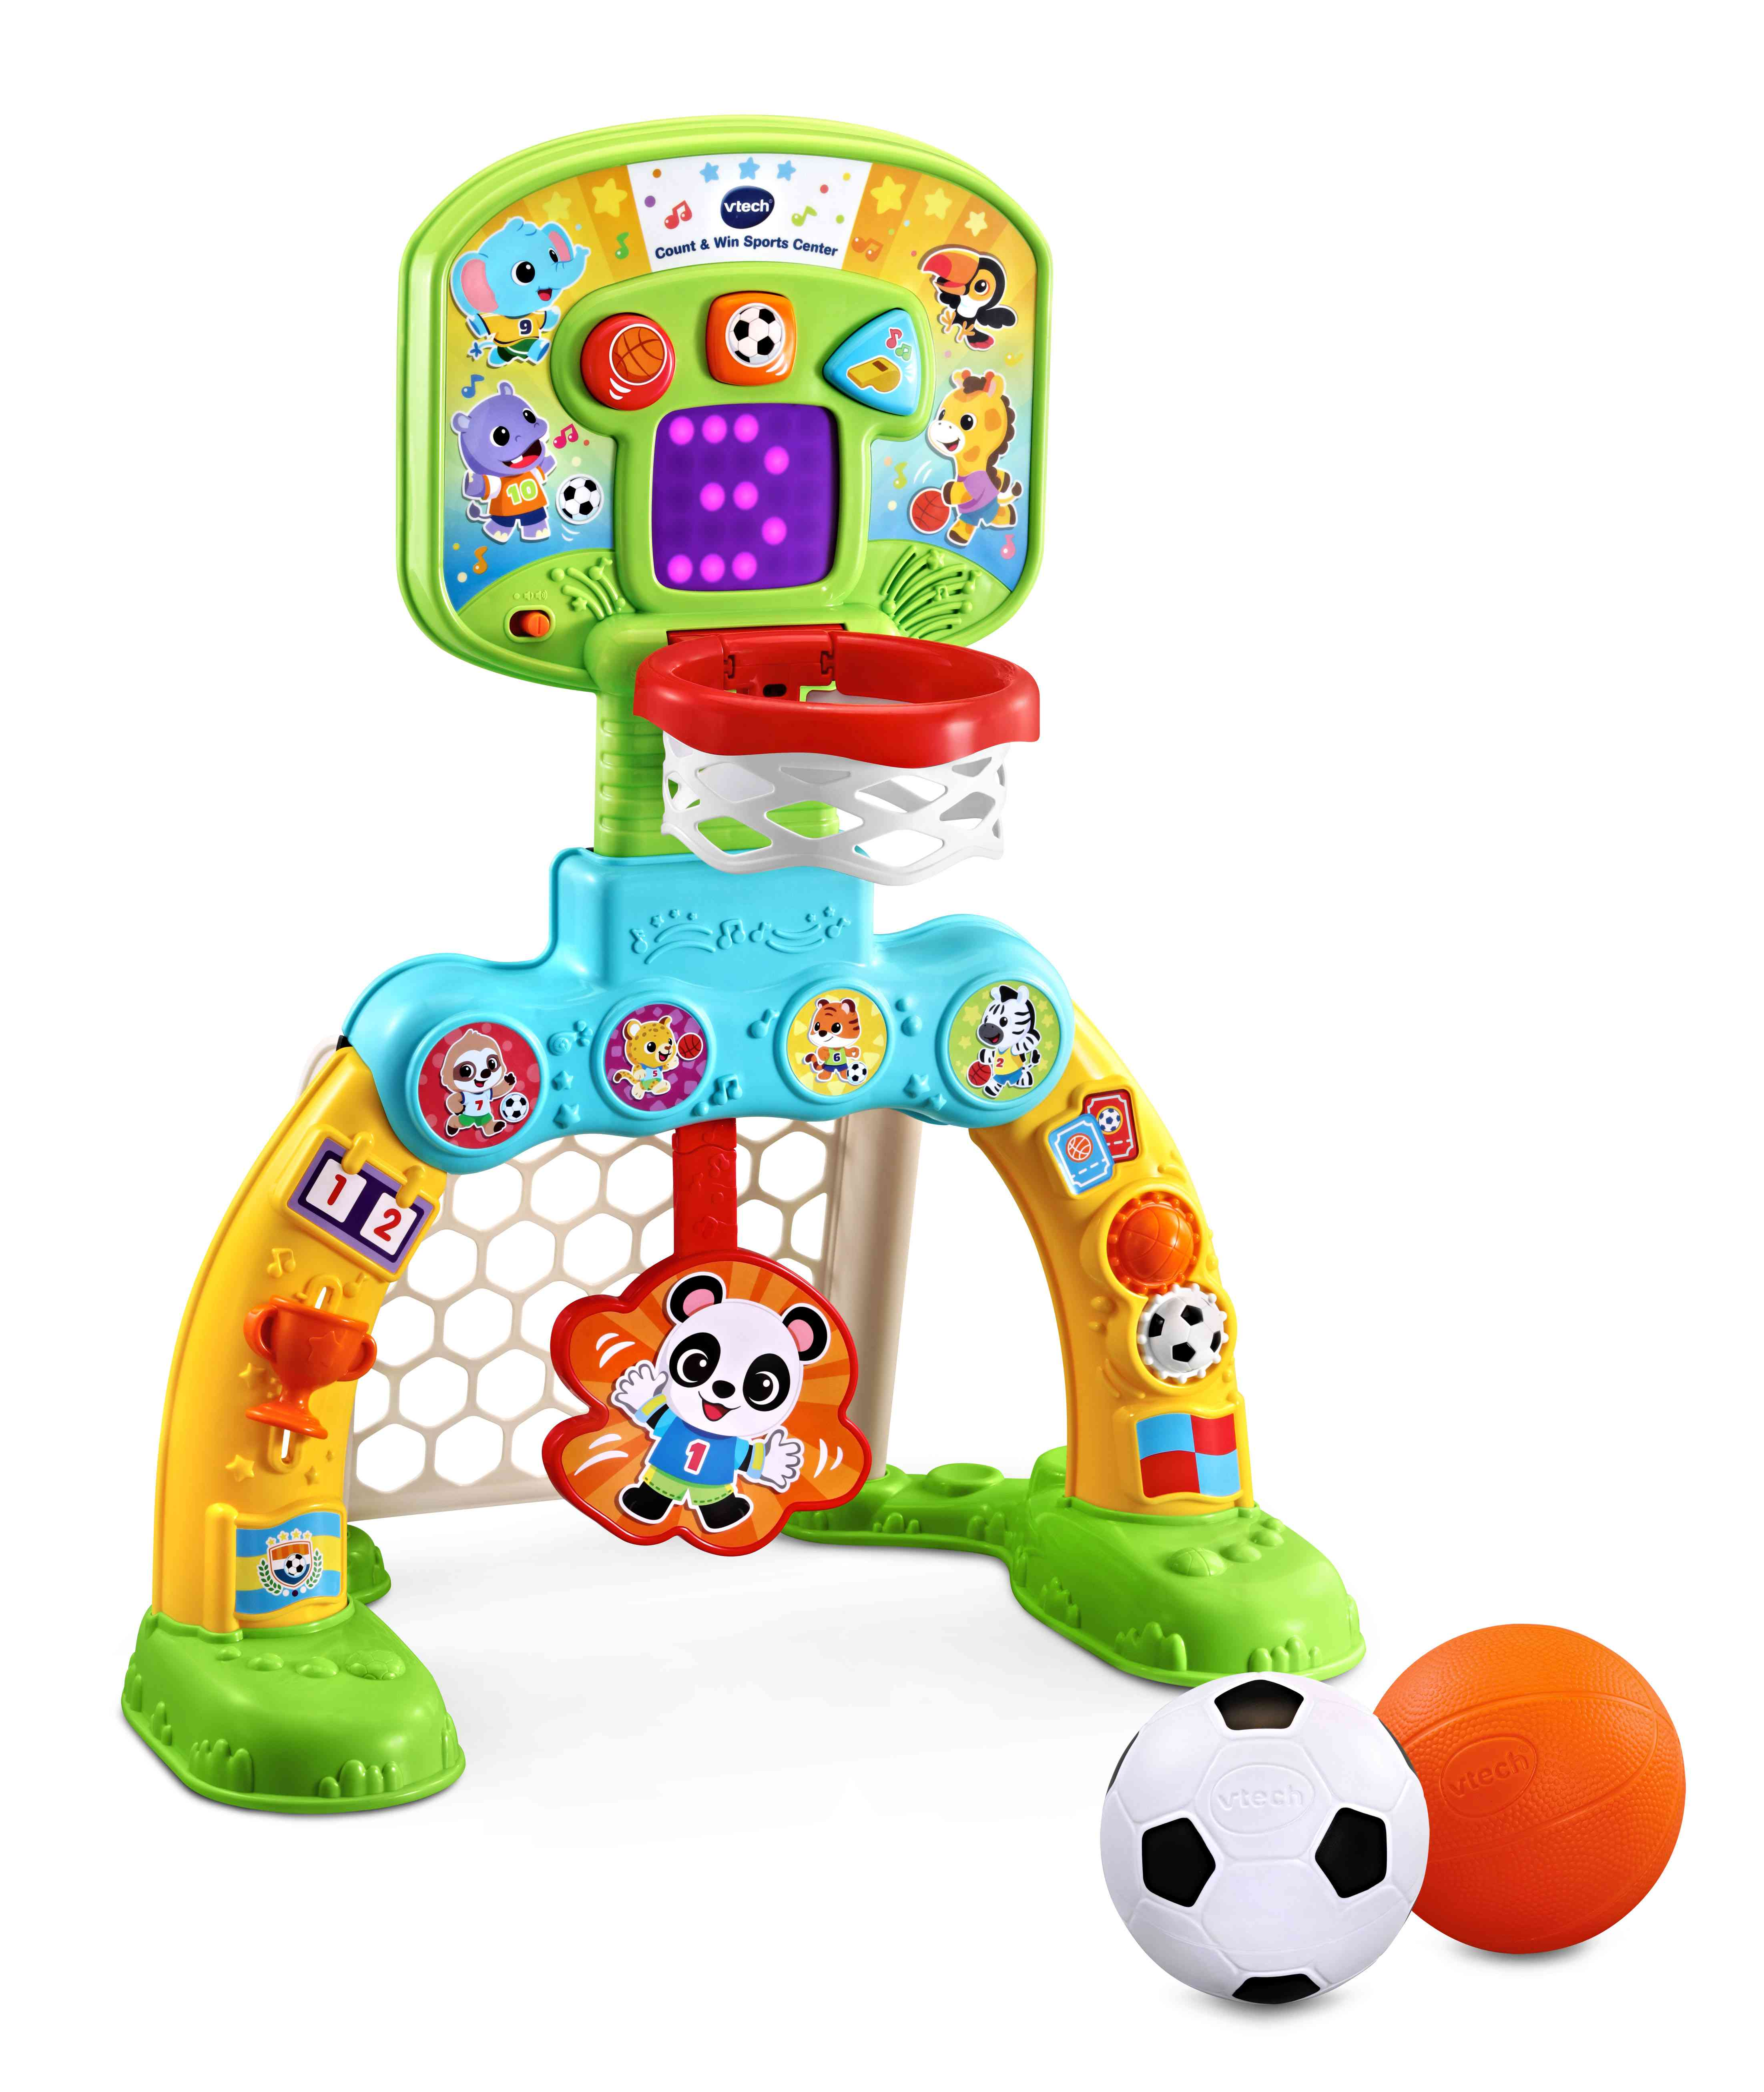 VTech Count and Win Sports Center